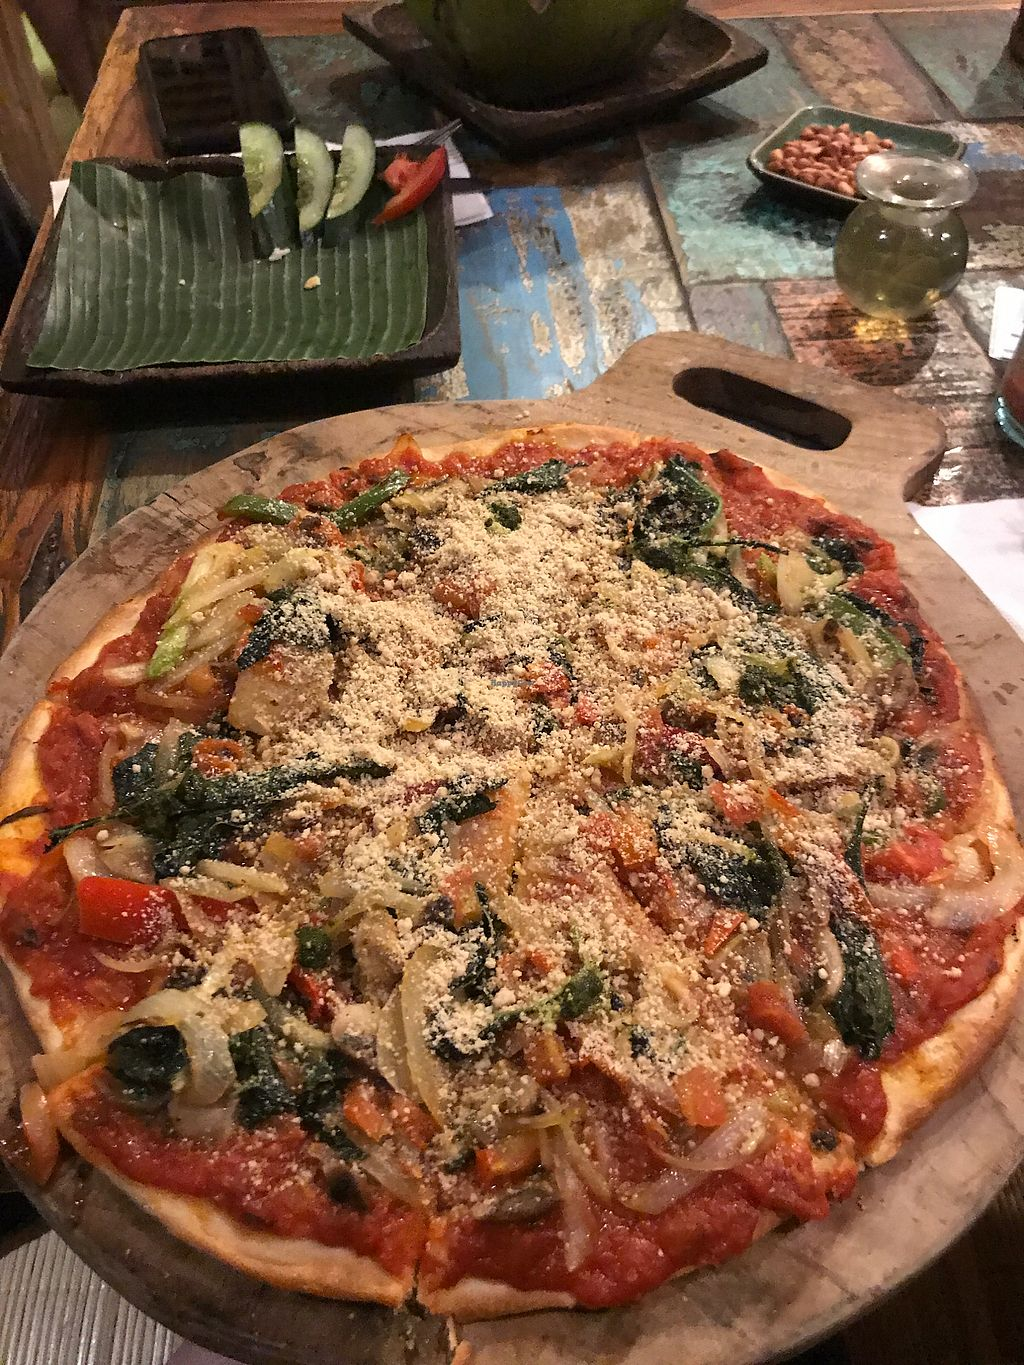 """Photo of Atman Nourish Kafe  by <a href=""""/members/profile/LolaNachtigall"""">LolaNachtigall</a> <br/>best vegan pizza ever <br/> November 7, 2017  - <a href='/contact/abuse/image/91940/322926'>Report</a>"""